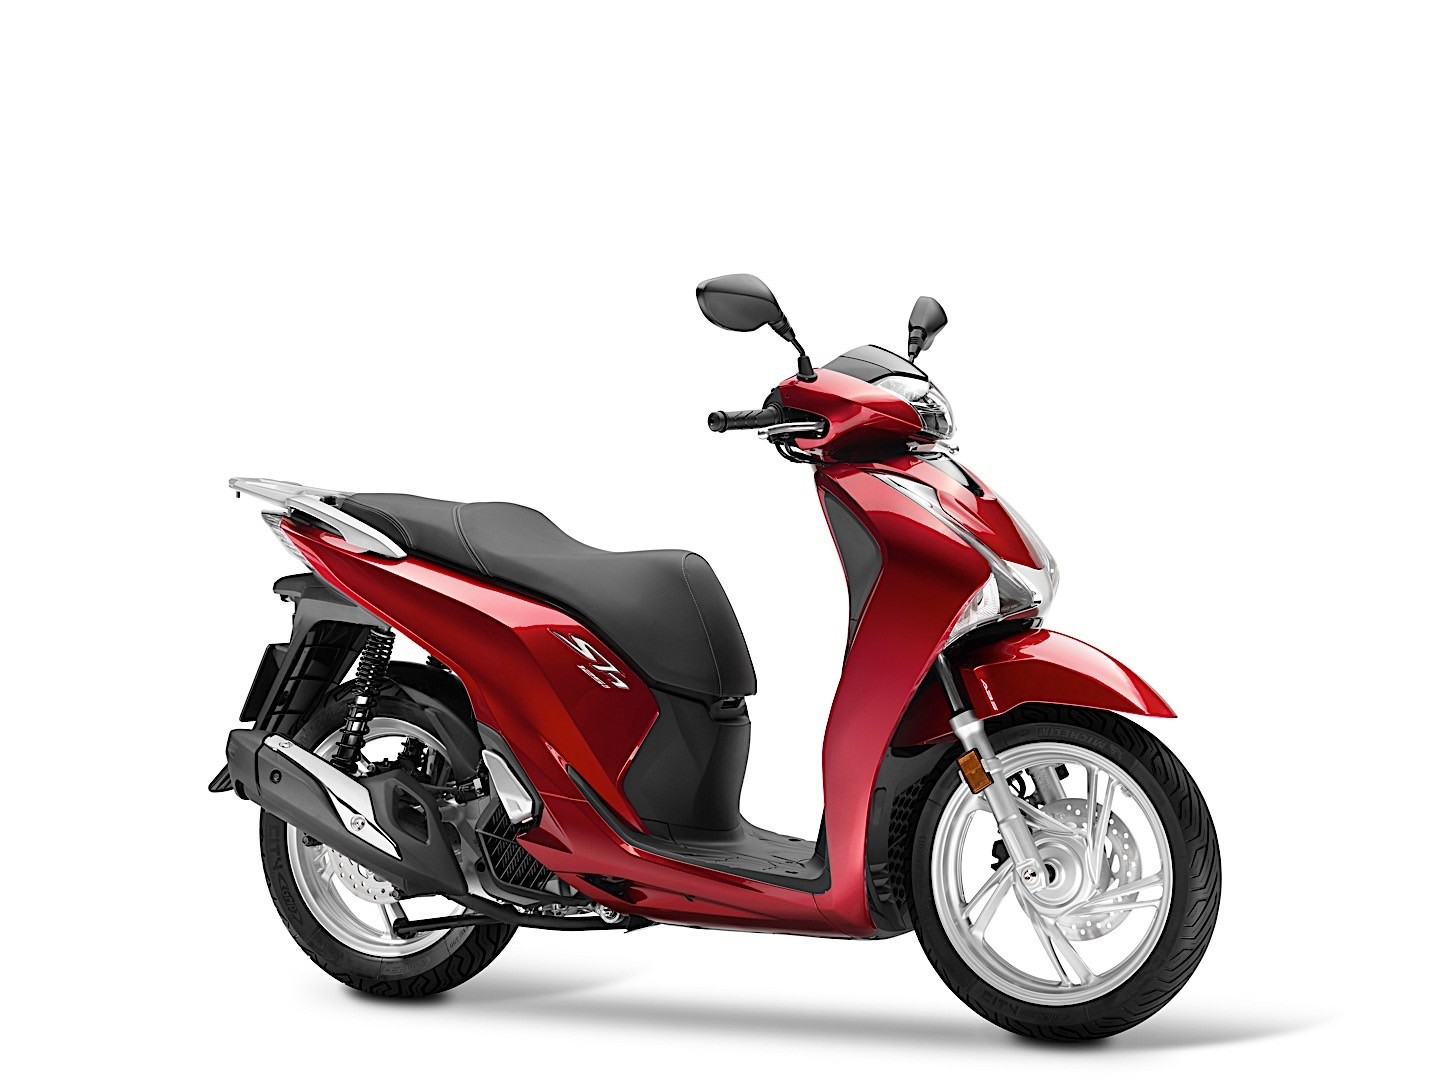 honda reaches 1 million scooters made in italy - autoevolution